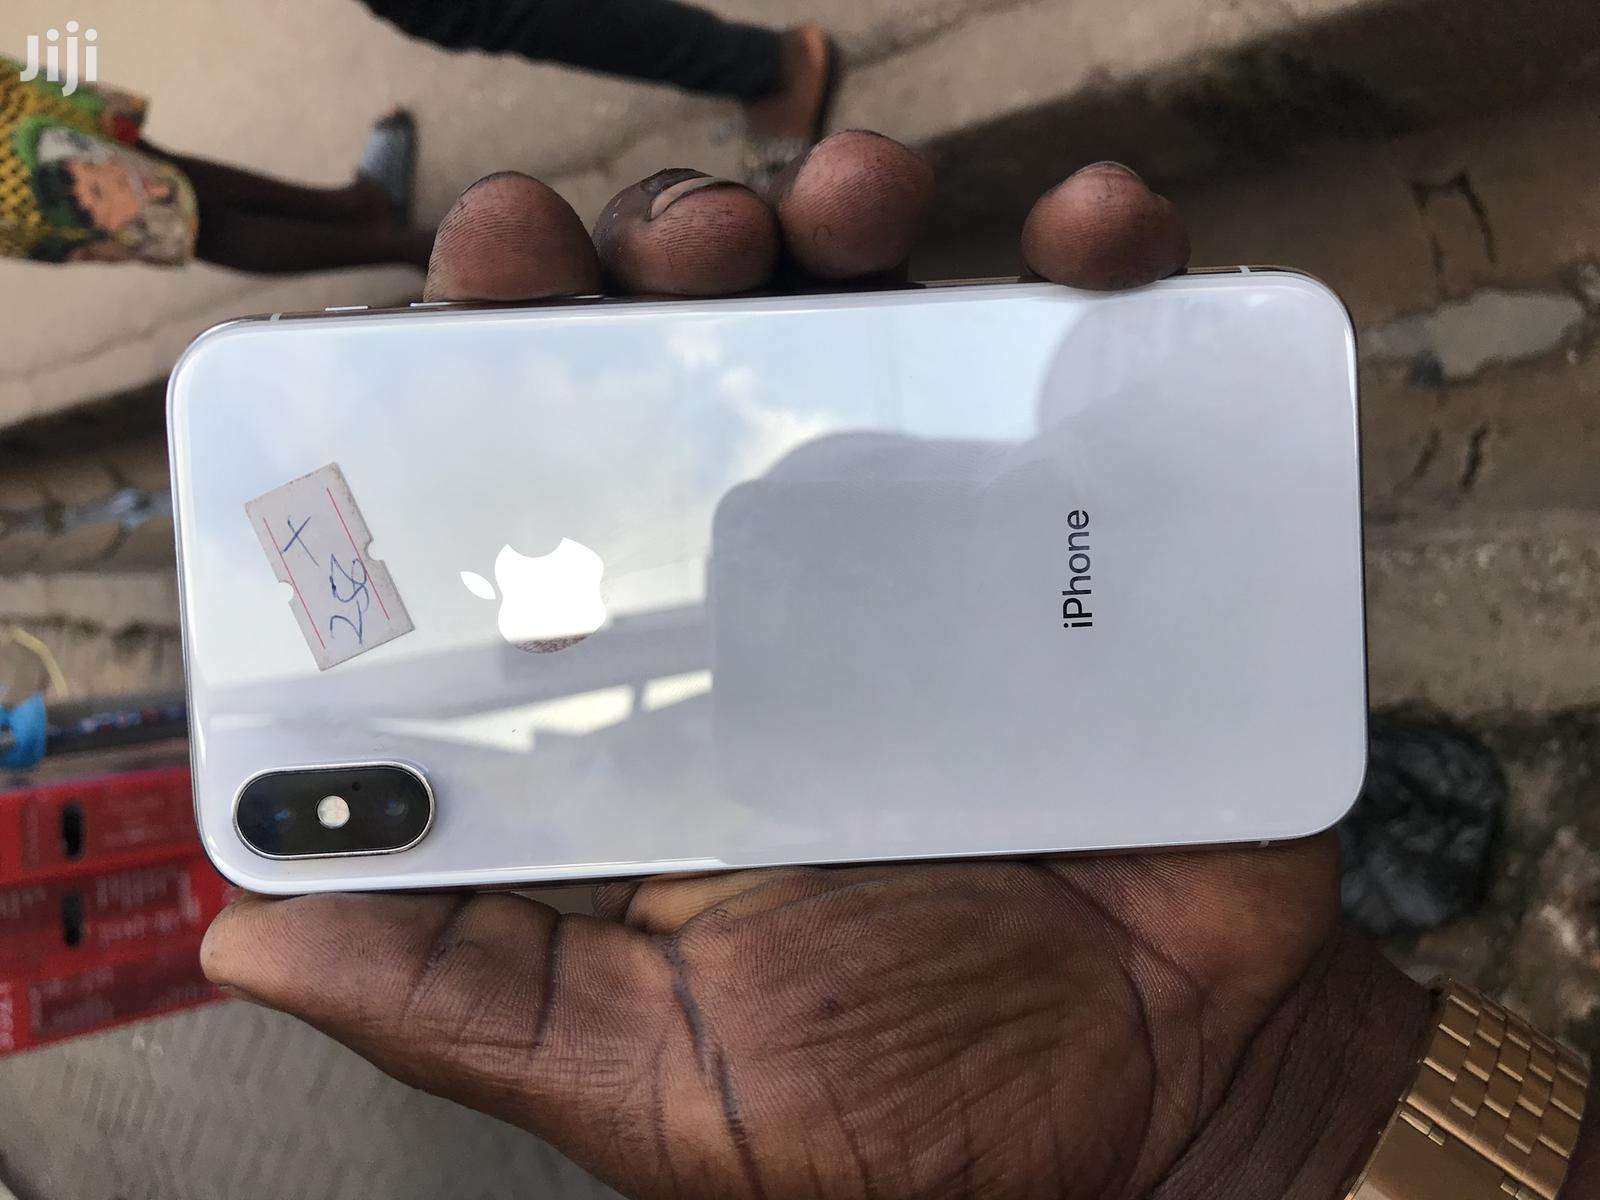 New Apple iPhone X 256 GB | Mobile Phones for sale in Kumasi Metropolitan, Ashanti, Ghana